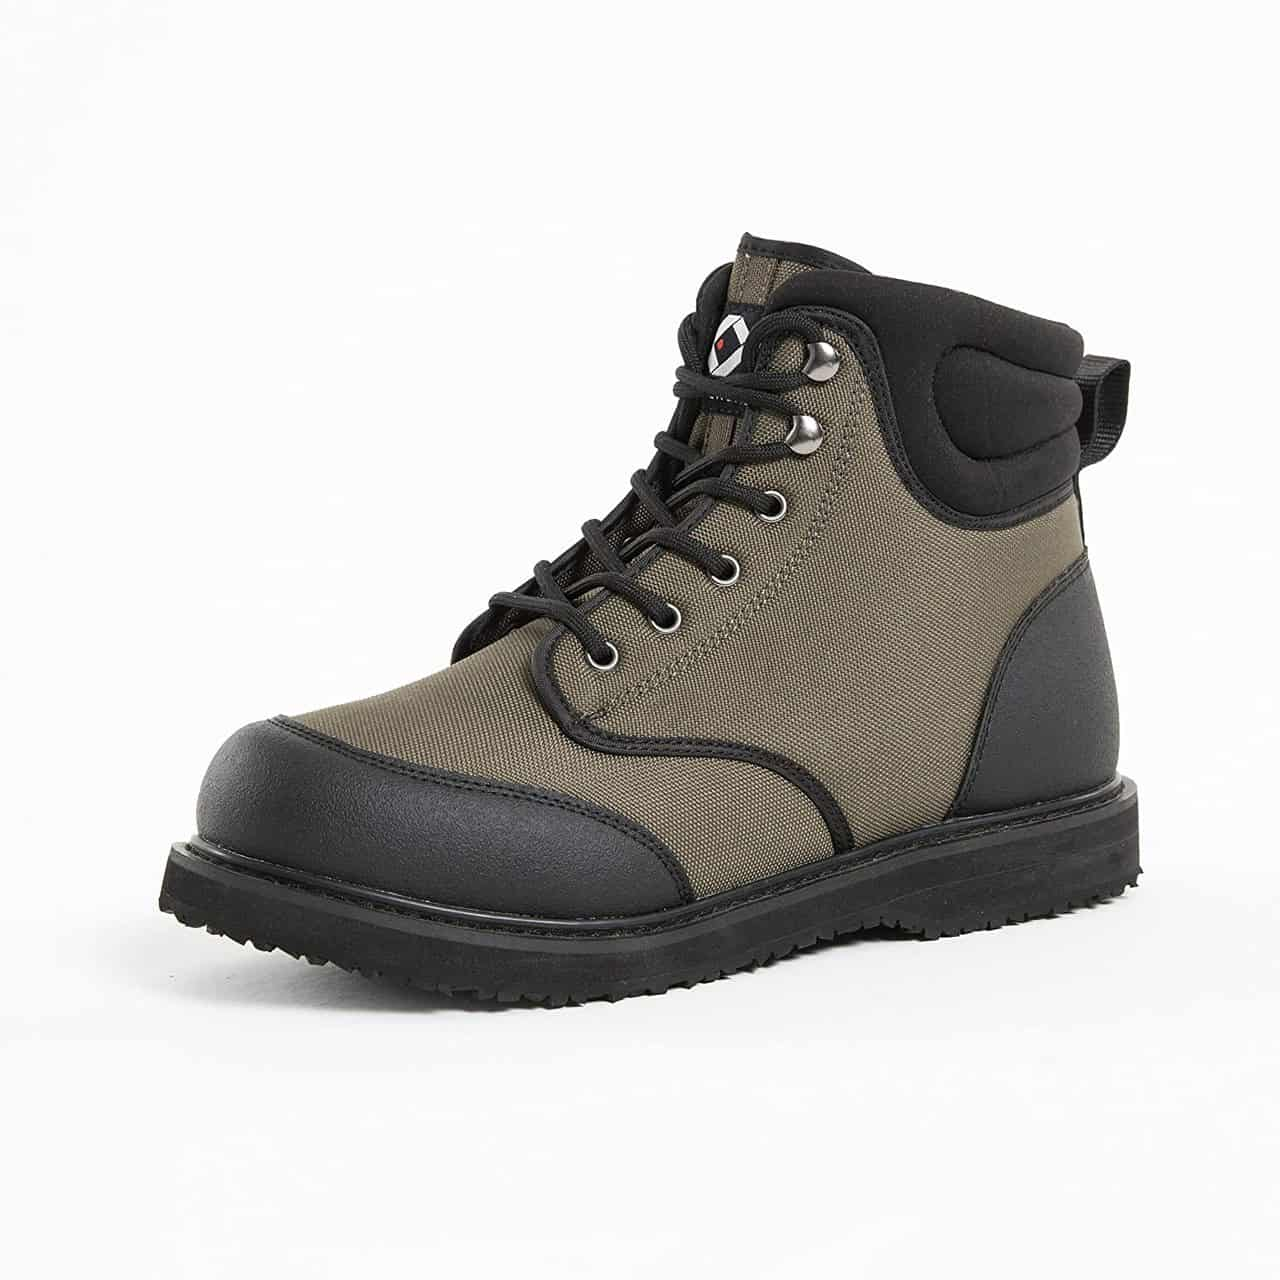 Men's Rubber Sole Wading Boots by Duck & Fish